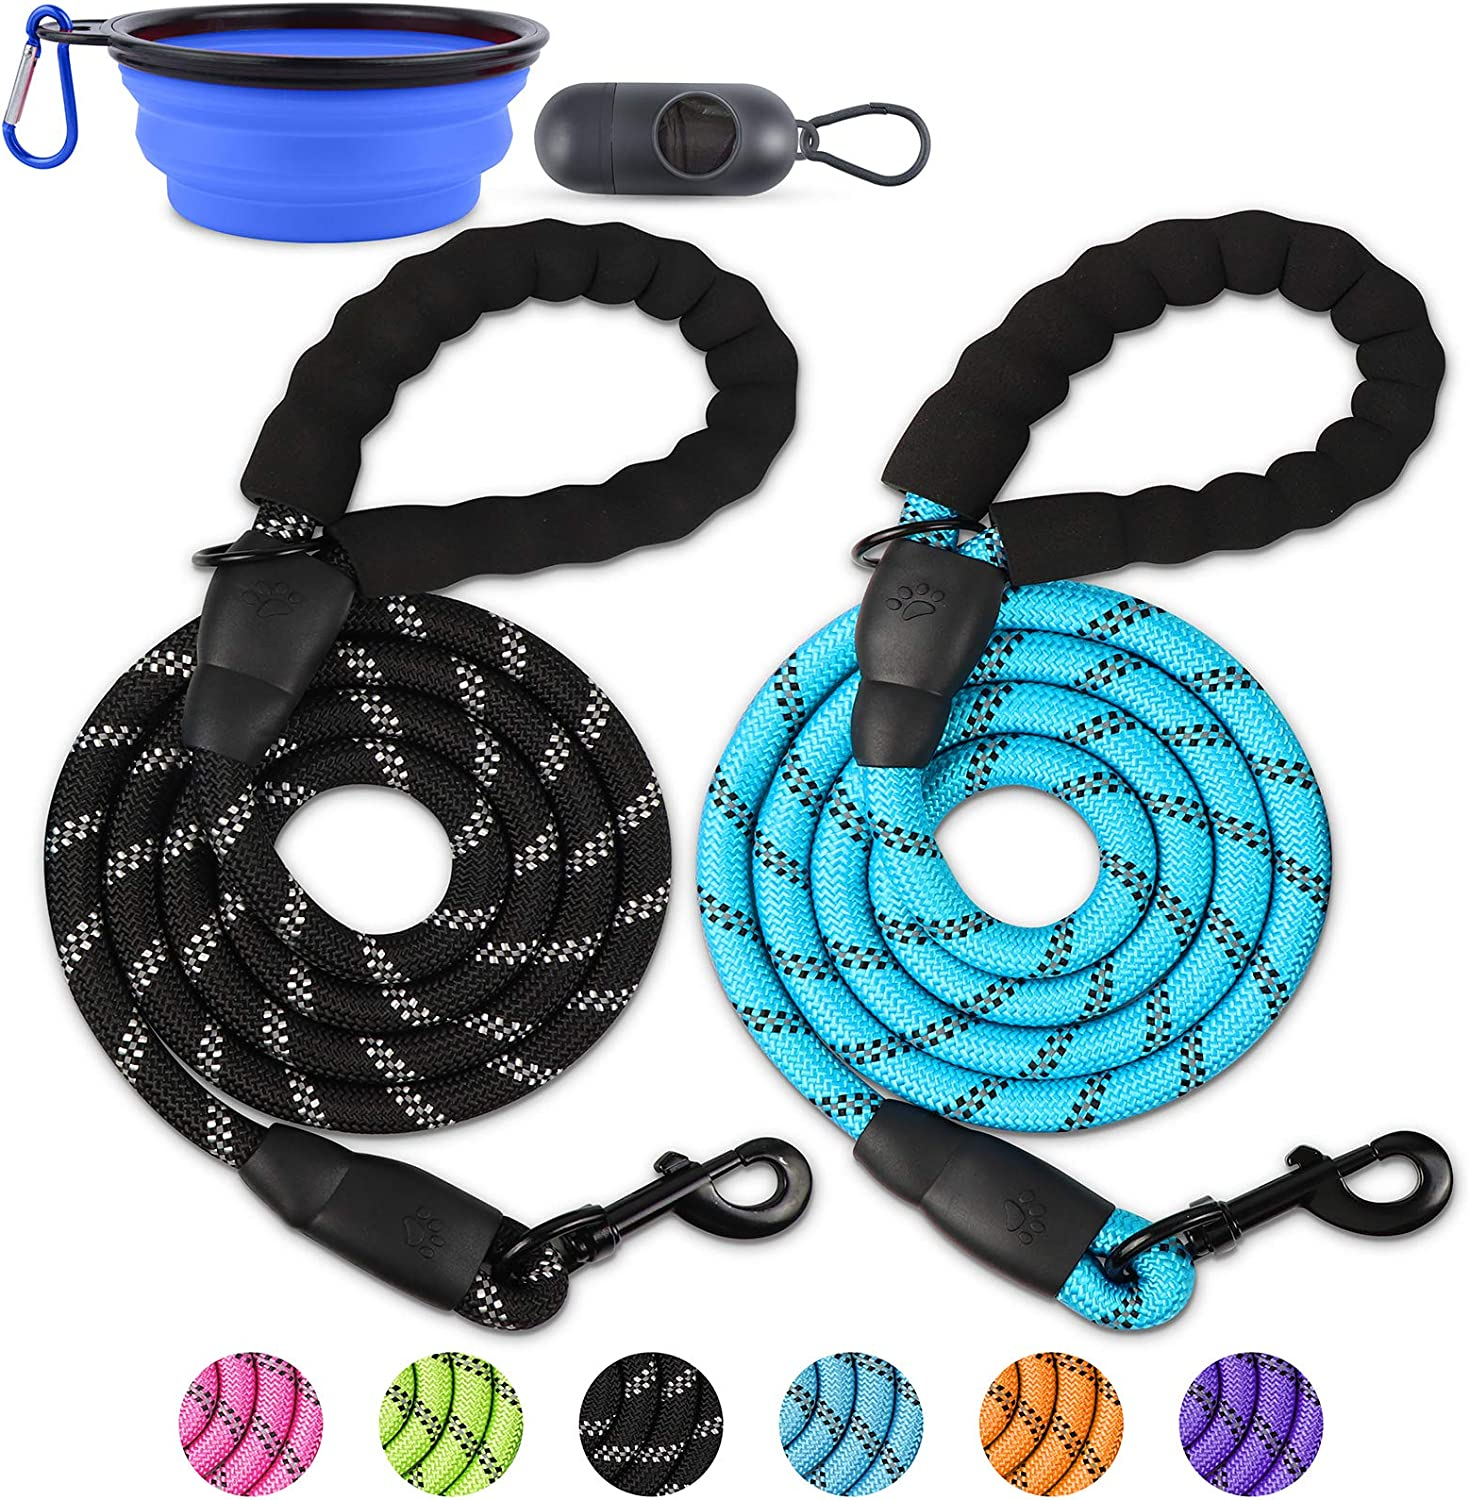 QUXIANG 2 Pack Dog Leash 5 FT Premium P Quality Outstanding Duty Nylon New life Heavy